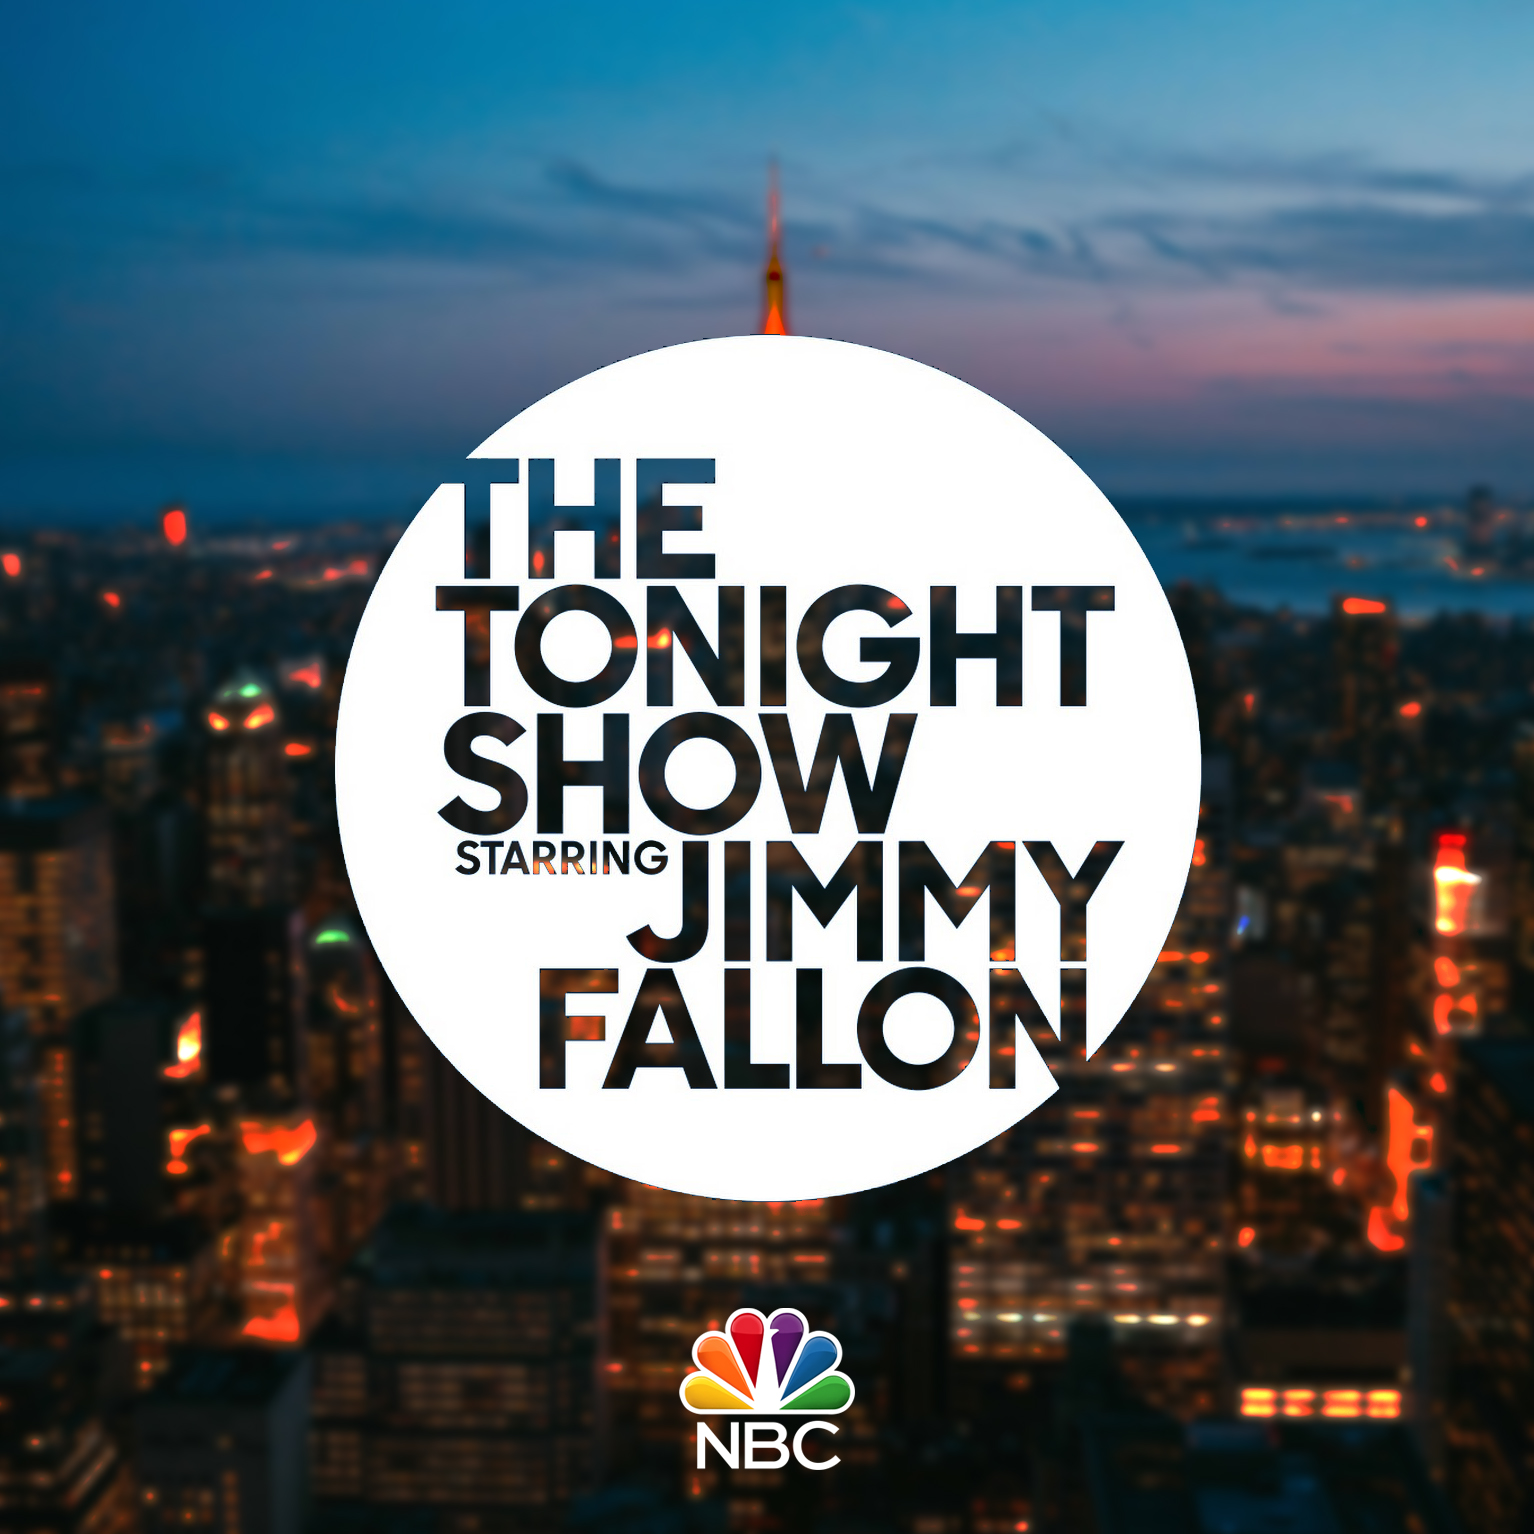 The Tonight Show (NBC)